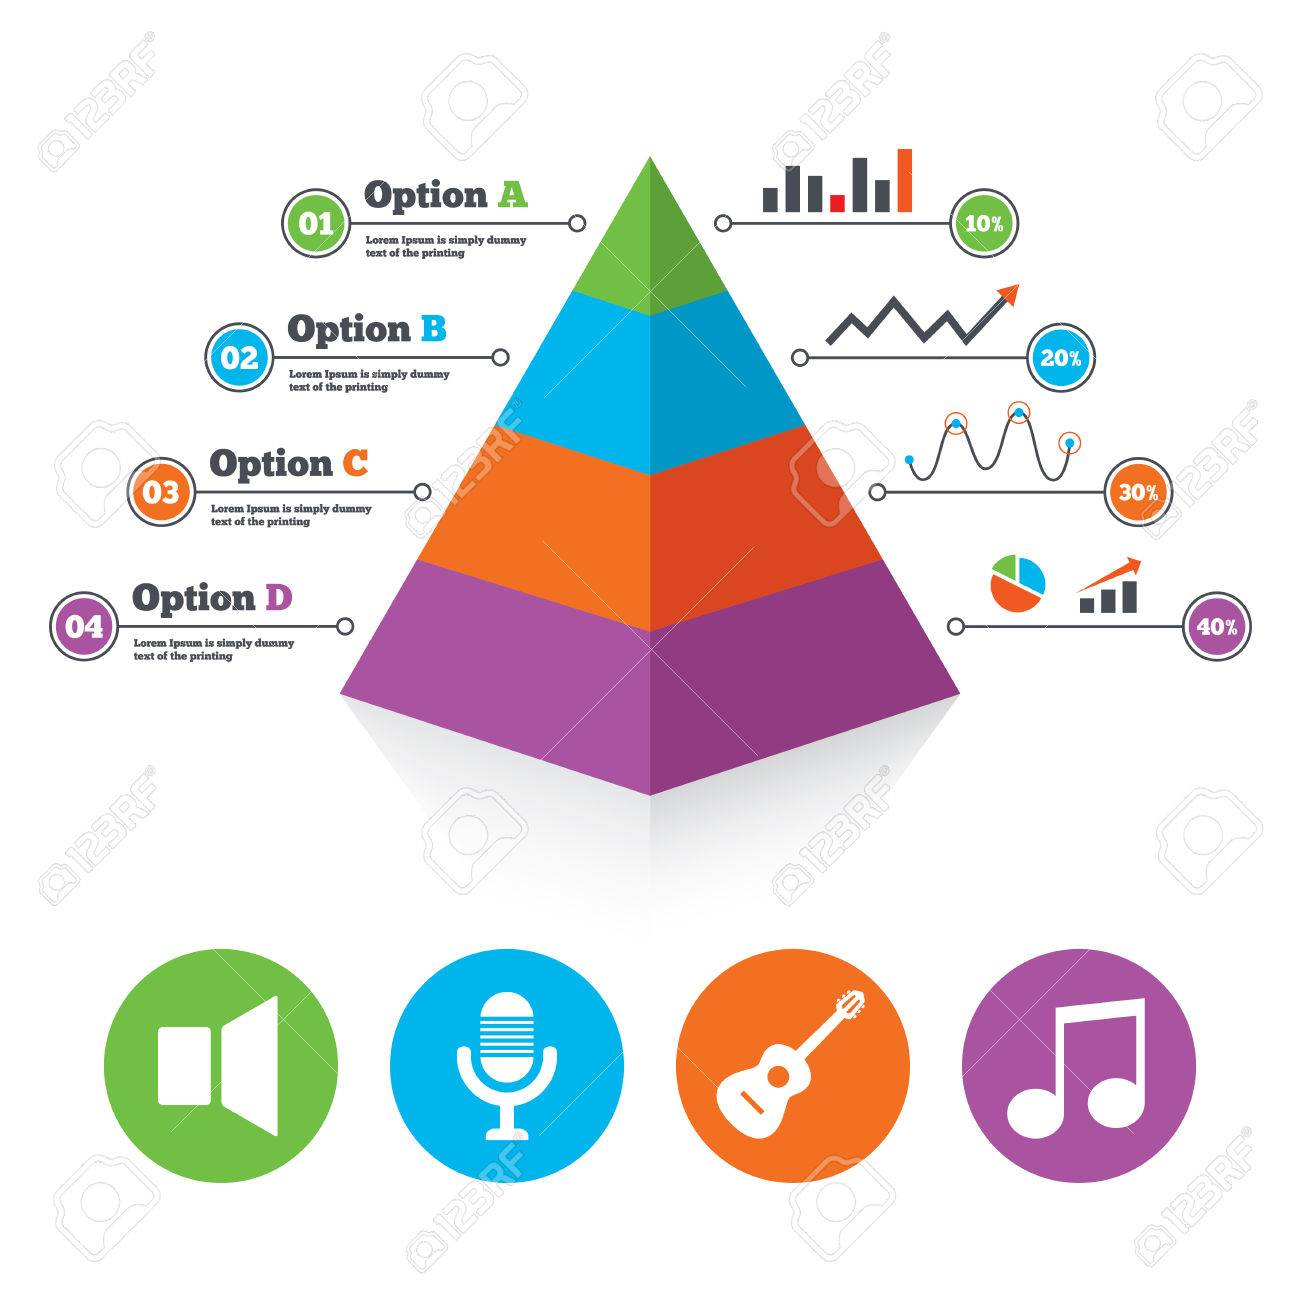 pyramid chart template musical elements icons microphone andpyramid chart template musical elements icons microphone and sound speaker symbols music note